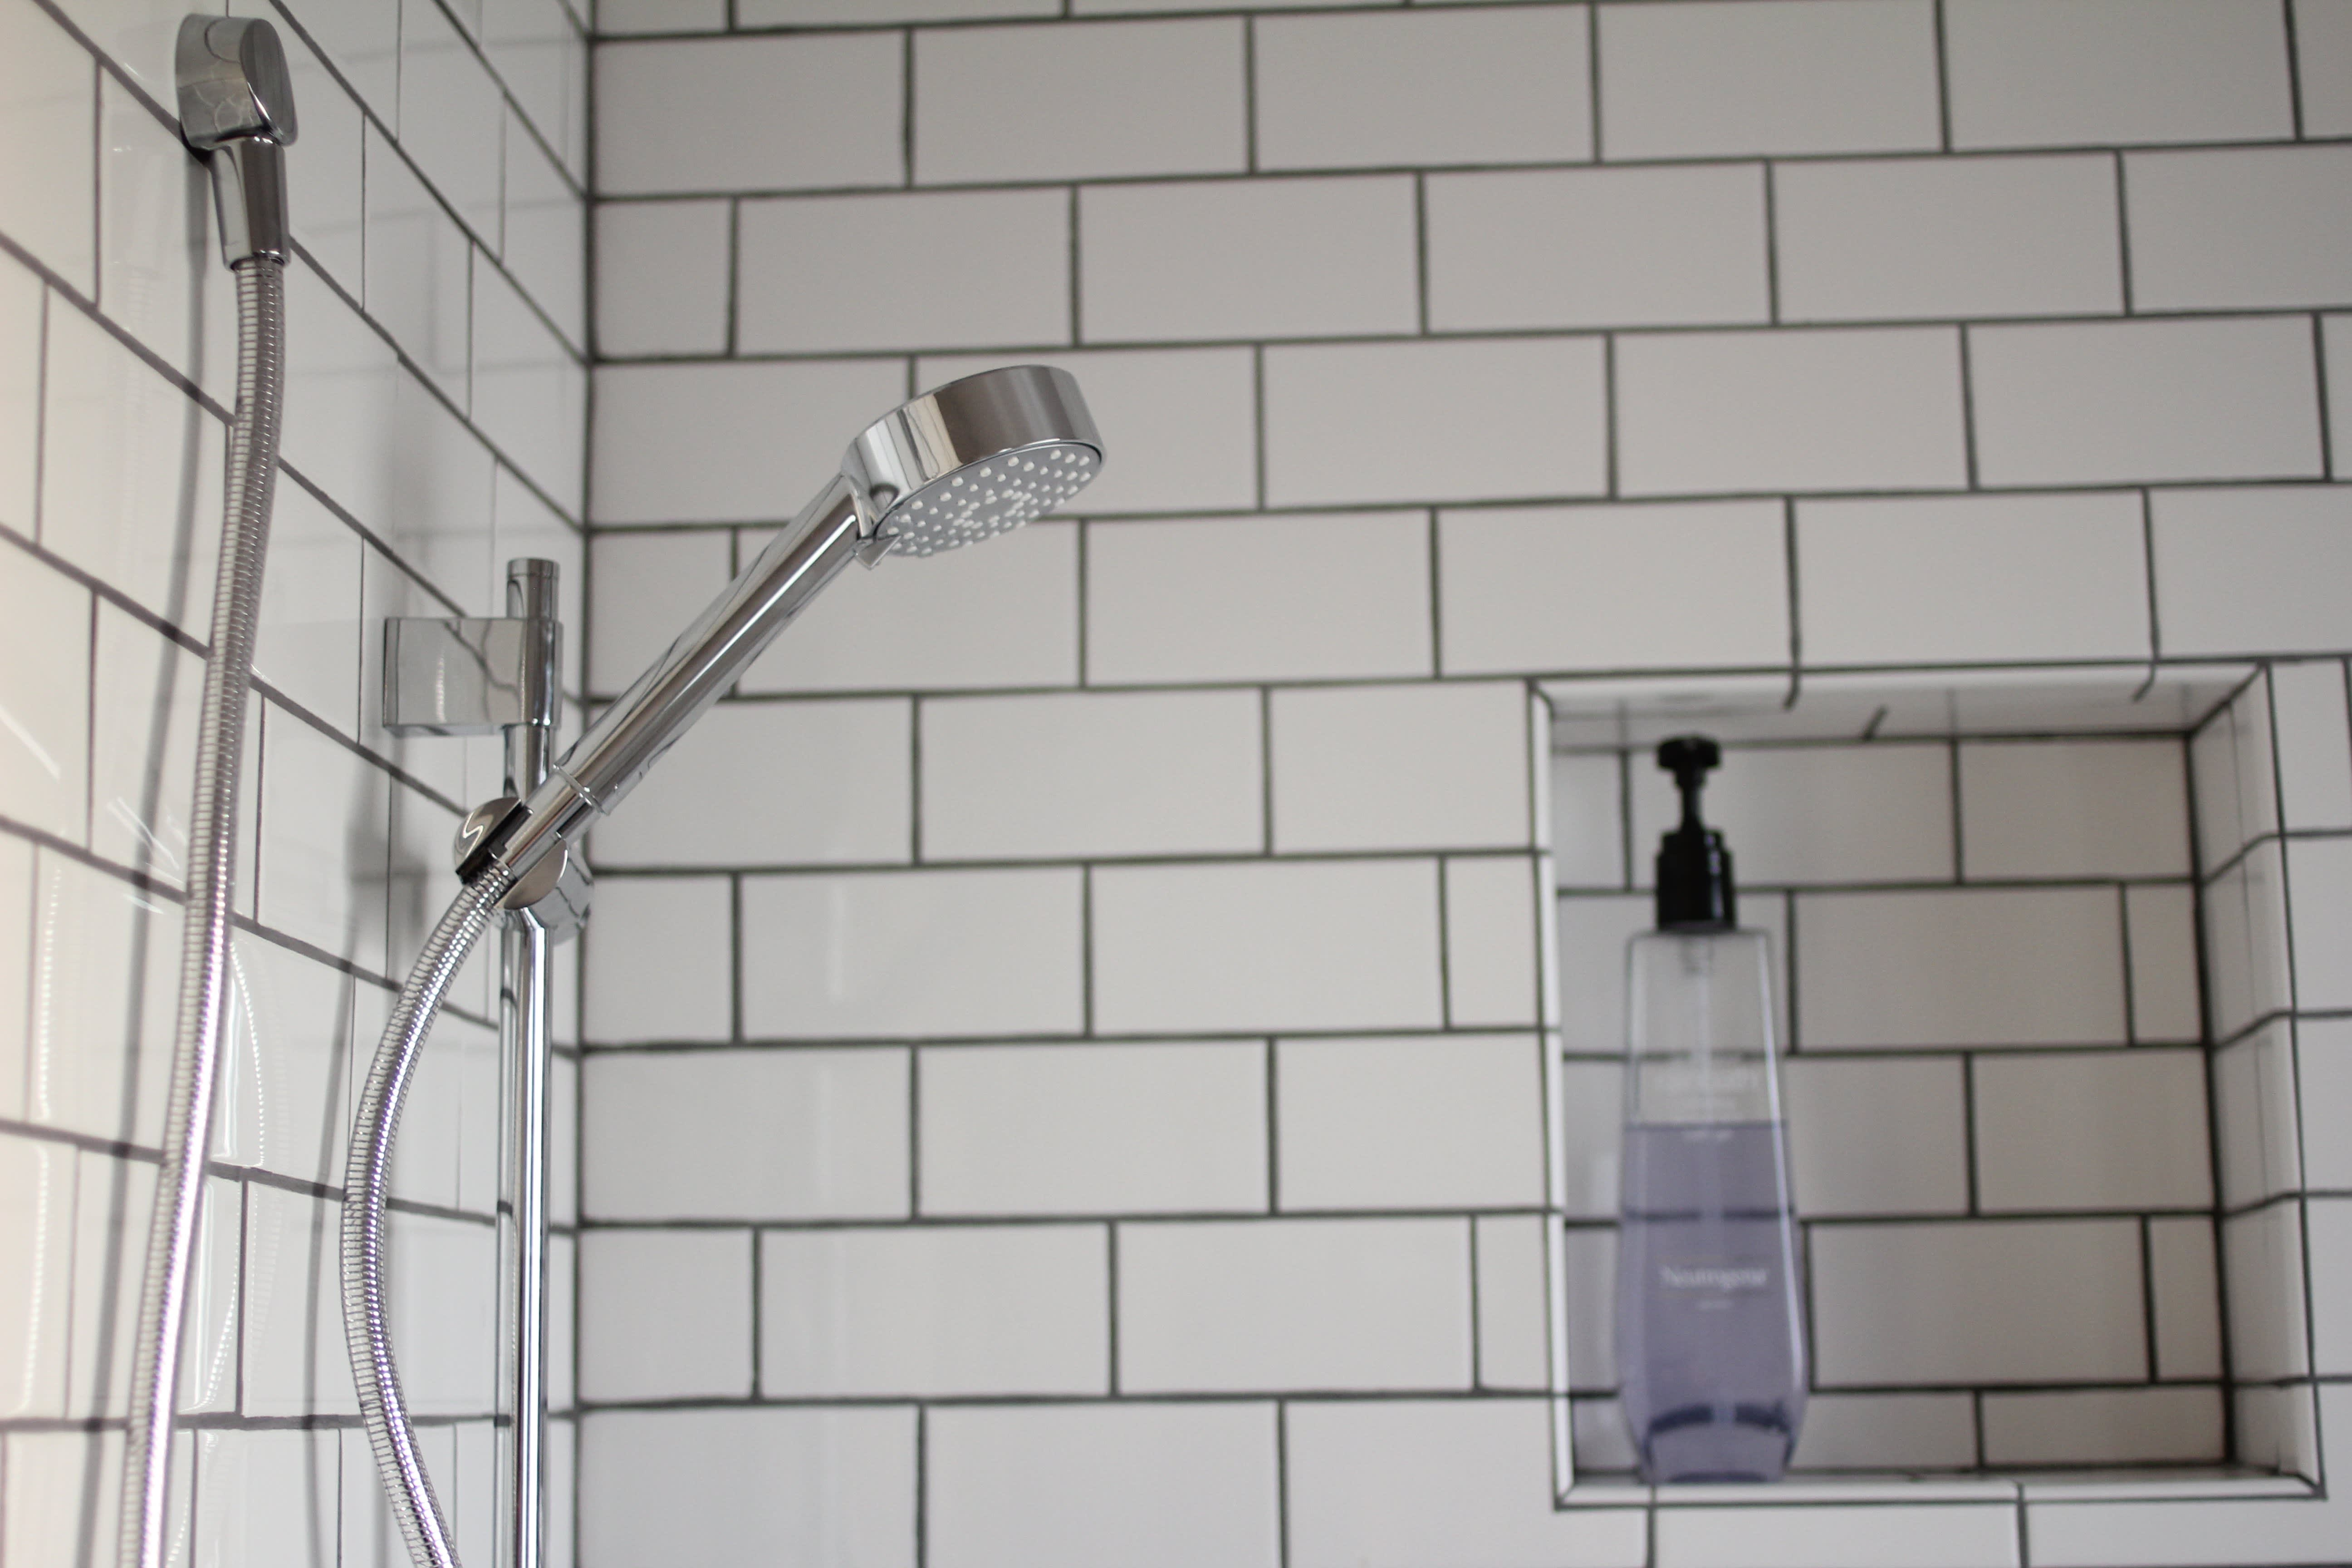 Diy Renovation Project How To Build A Recessed Shower